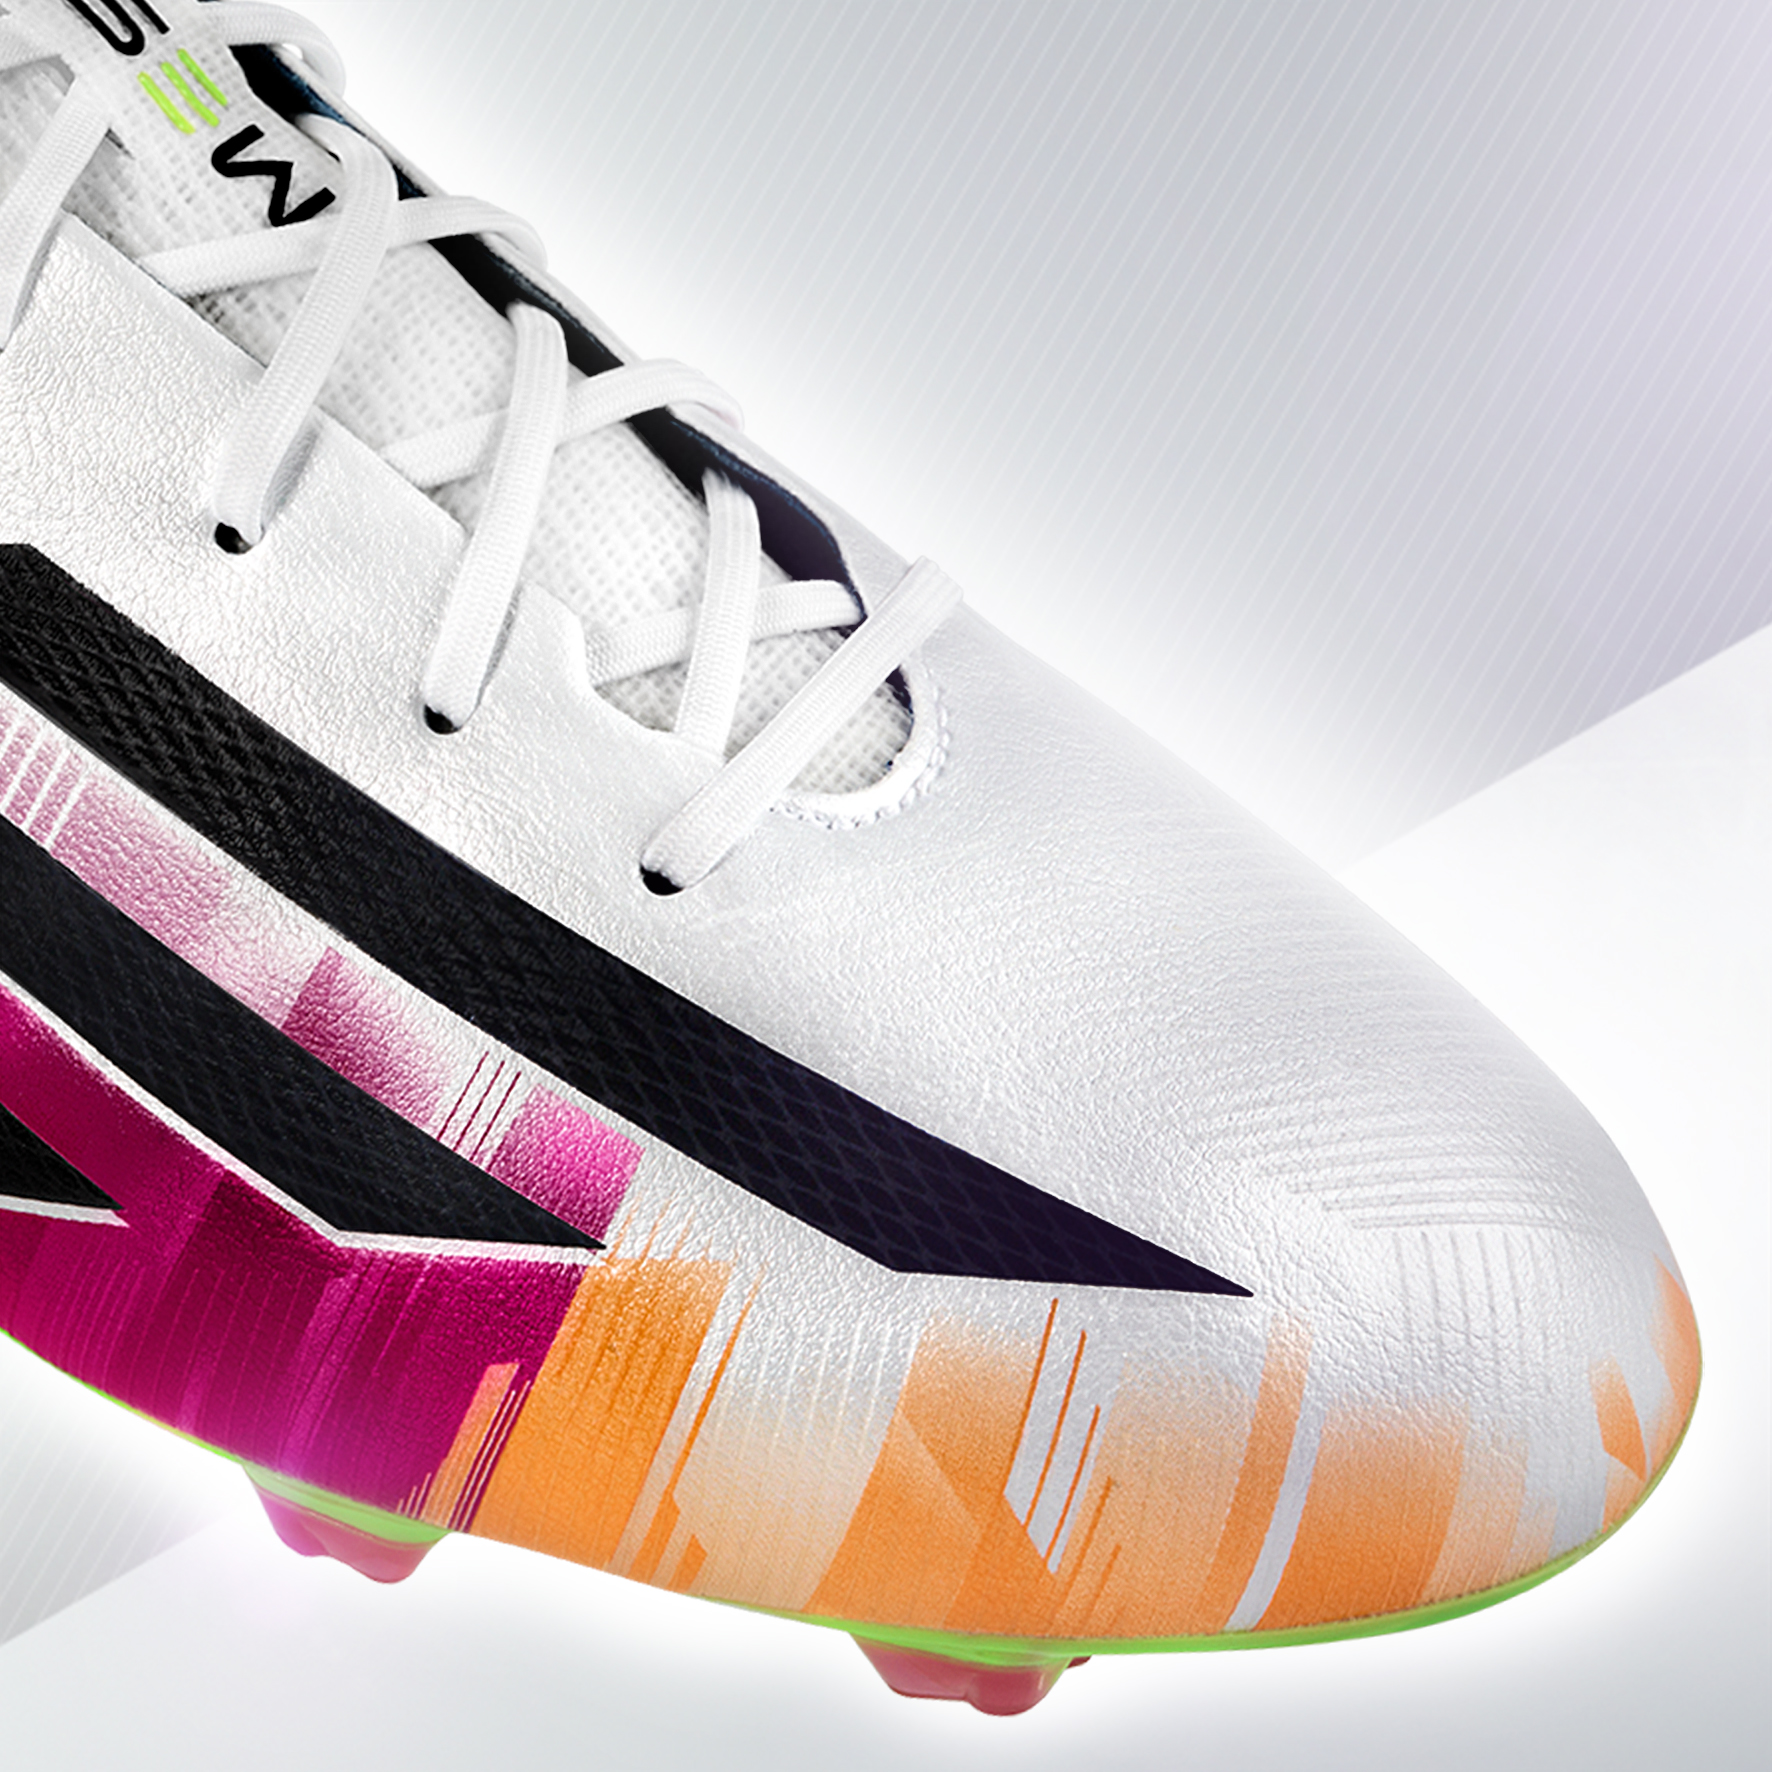 7cb8b8dda6f ... the adizero f50 Messi is one of the lightest boots on the market.  ADI MESSI DETAILS 5